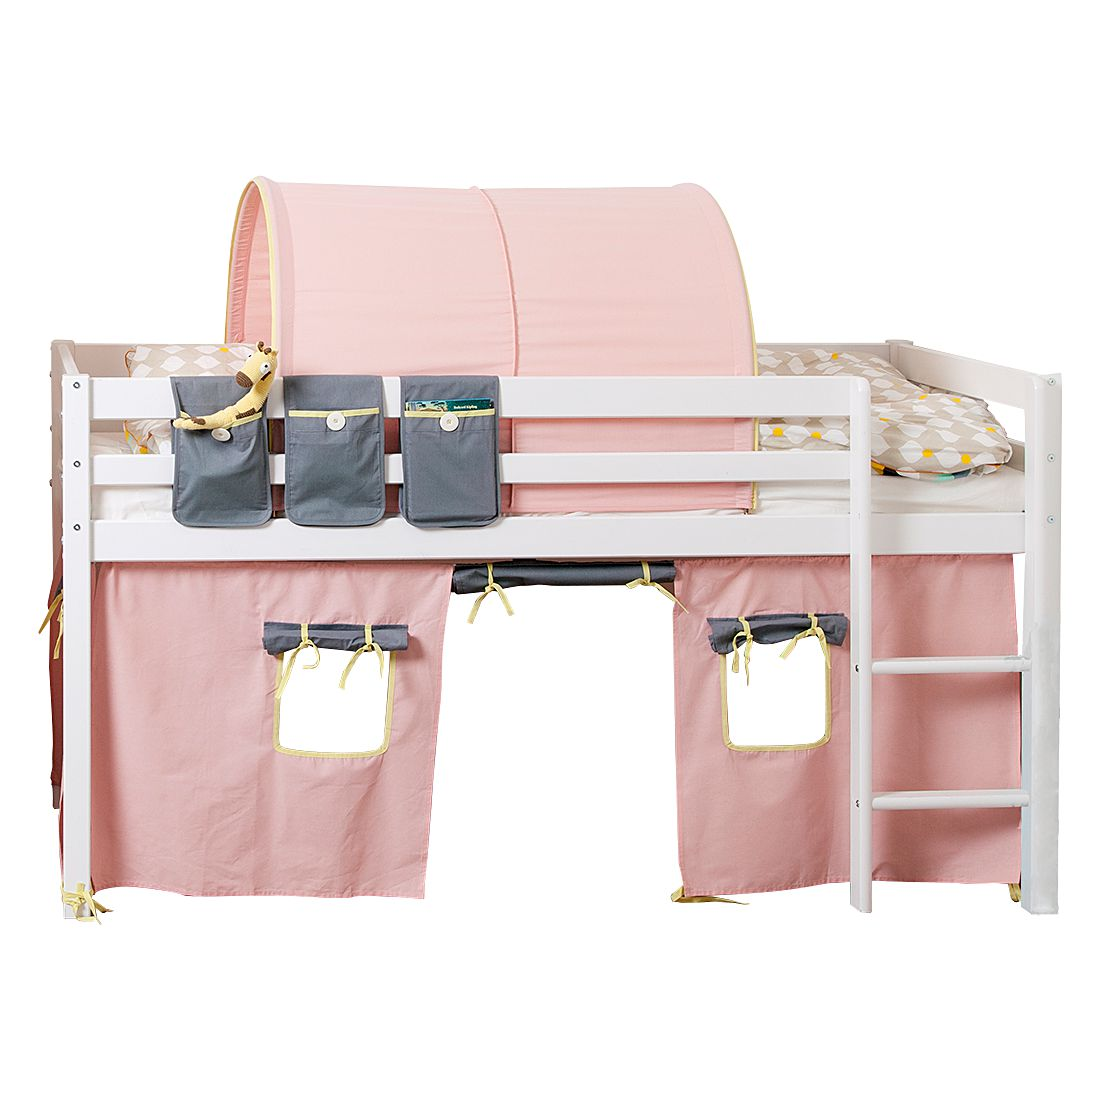 halbhochbett hit kiefer massiv textil full white pink grau mit betttaschen tunnel. Black Bedroom Furniture Sets. Home Design Ideas